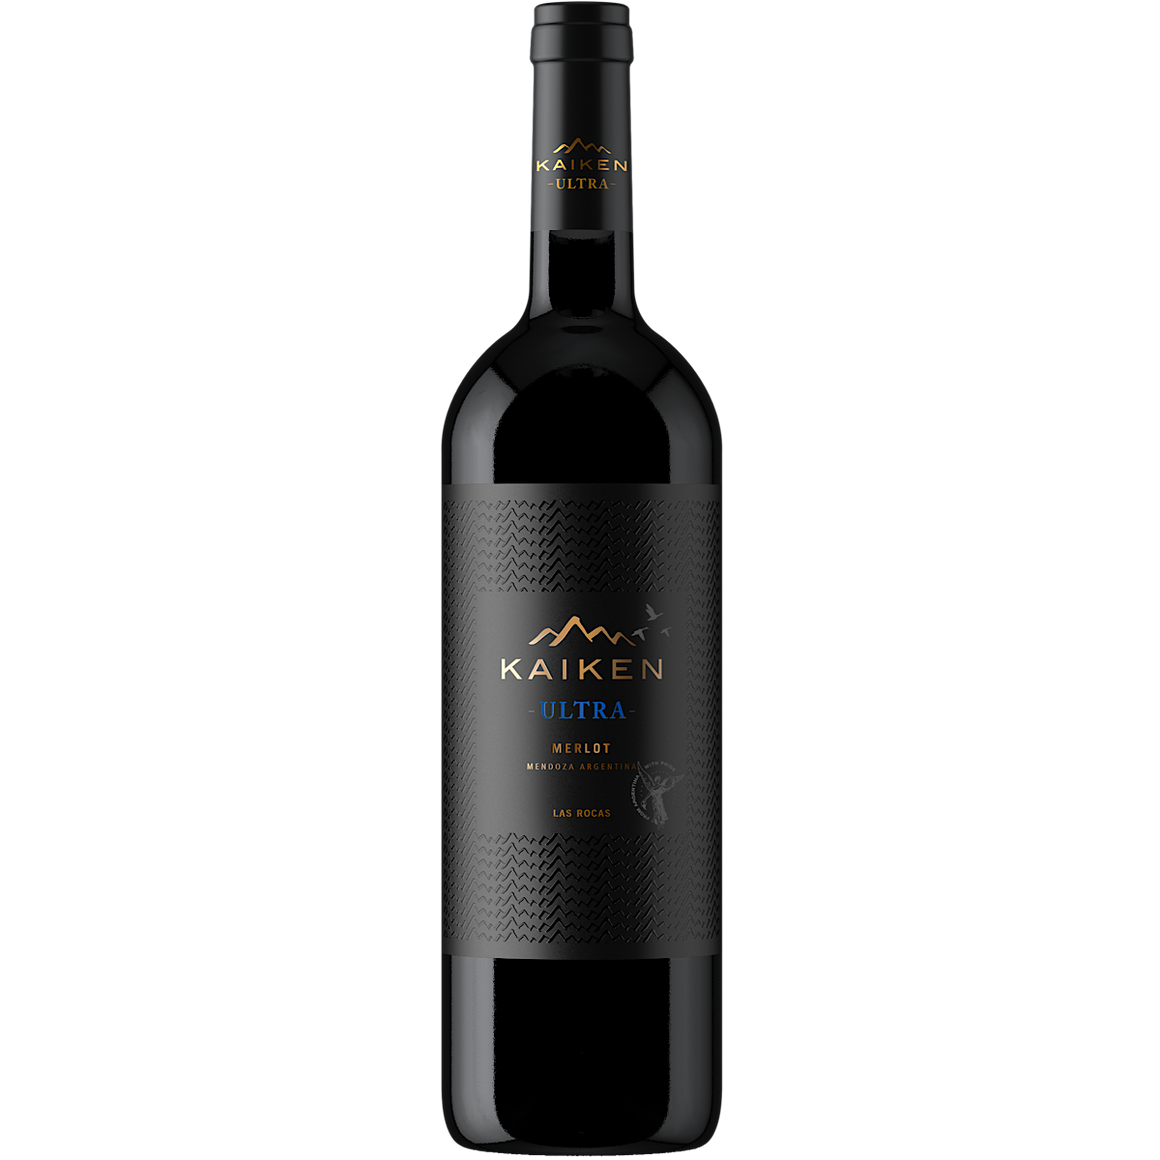 2018 Kaiken Ultra Mendoza Merlot 6 Bottle Case 75cl